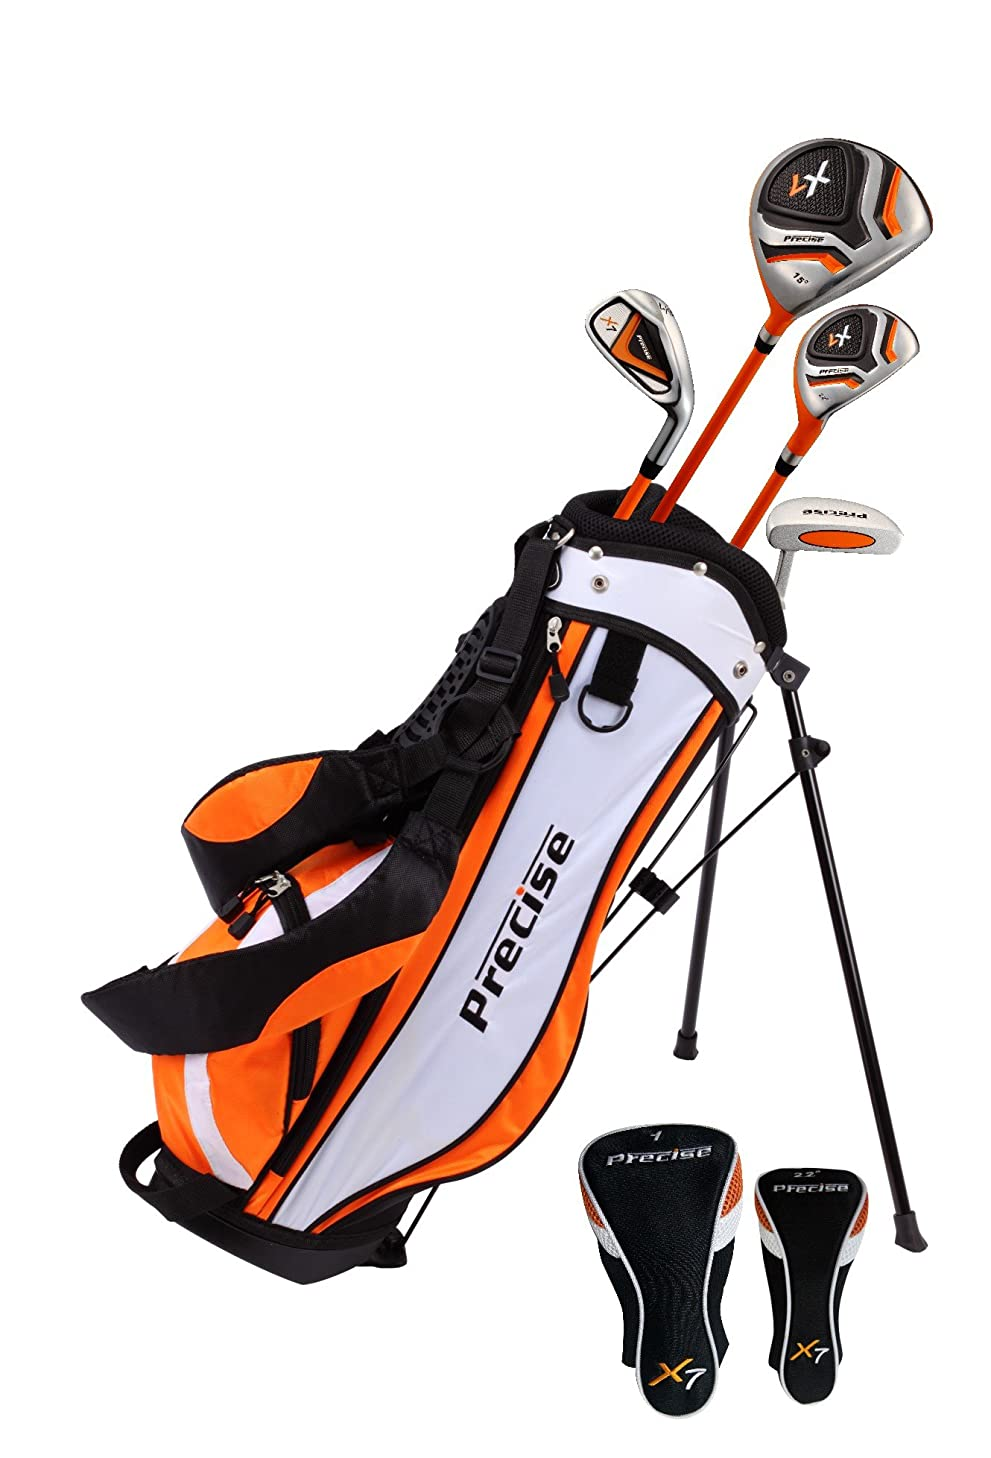 Top Performance Premium Junior Golf Club Set for Age 3-5, Right Hand & Left Hand, Boys and Girls